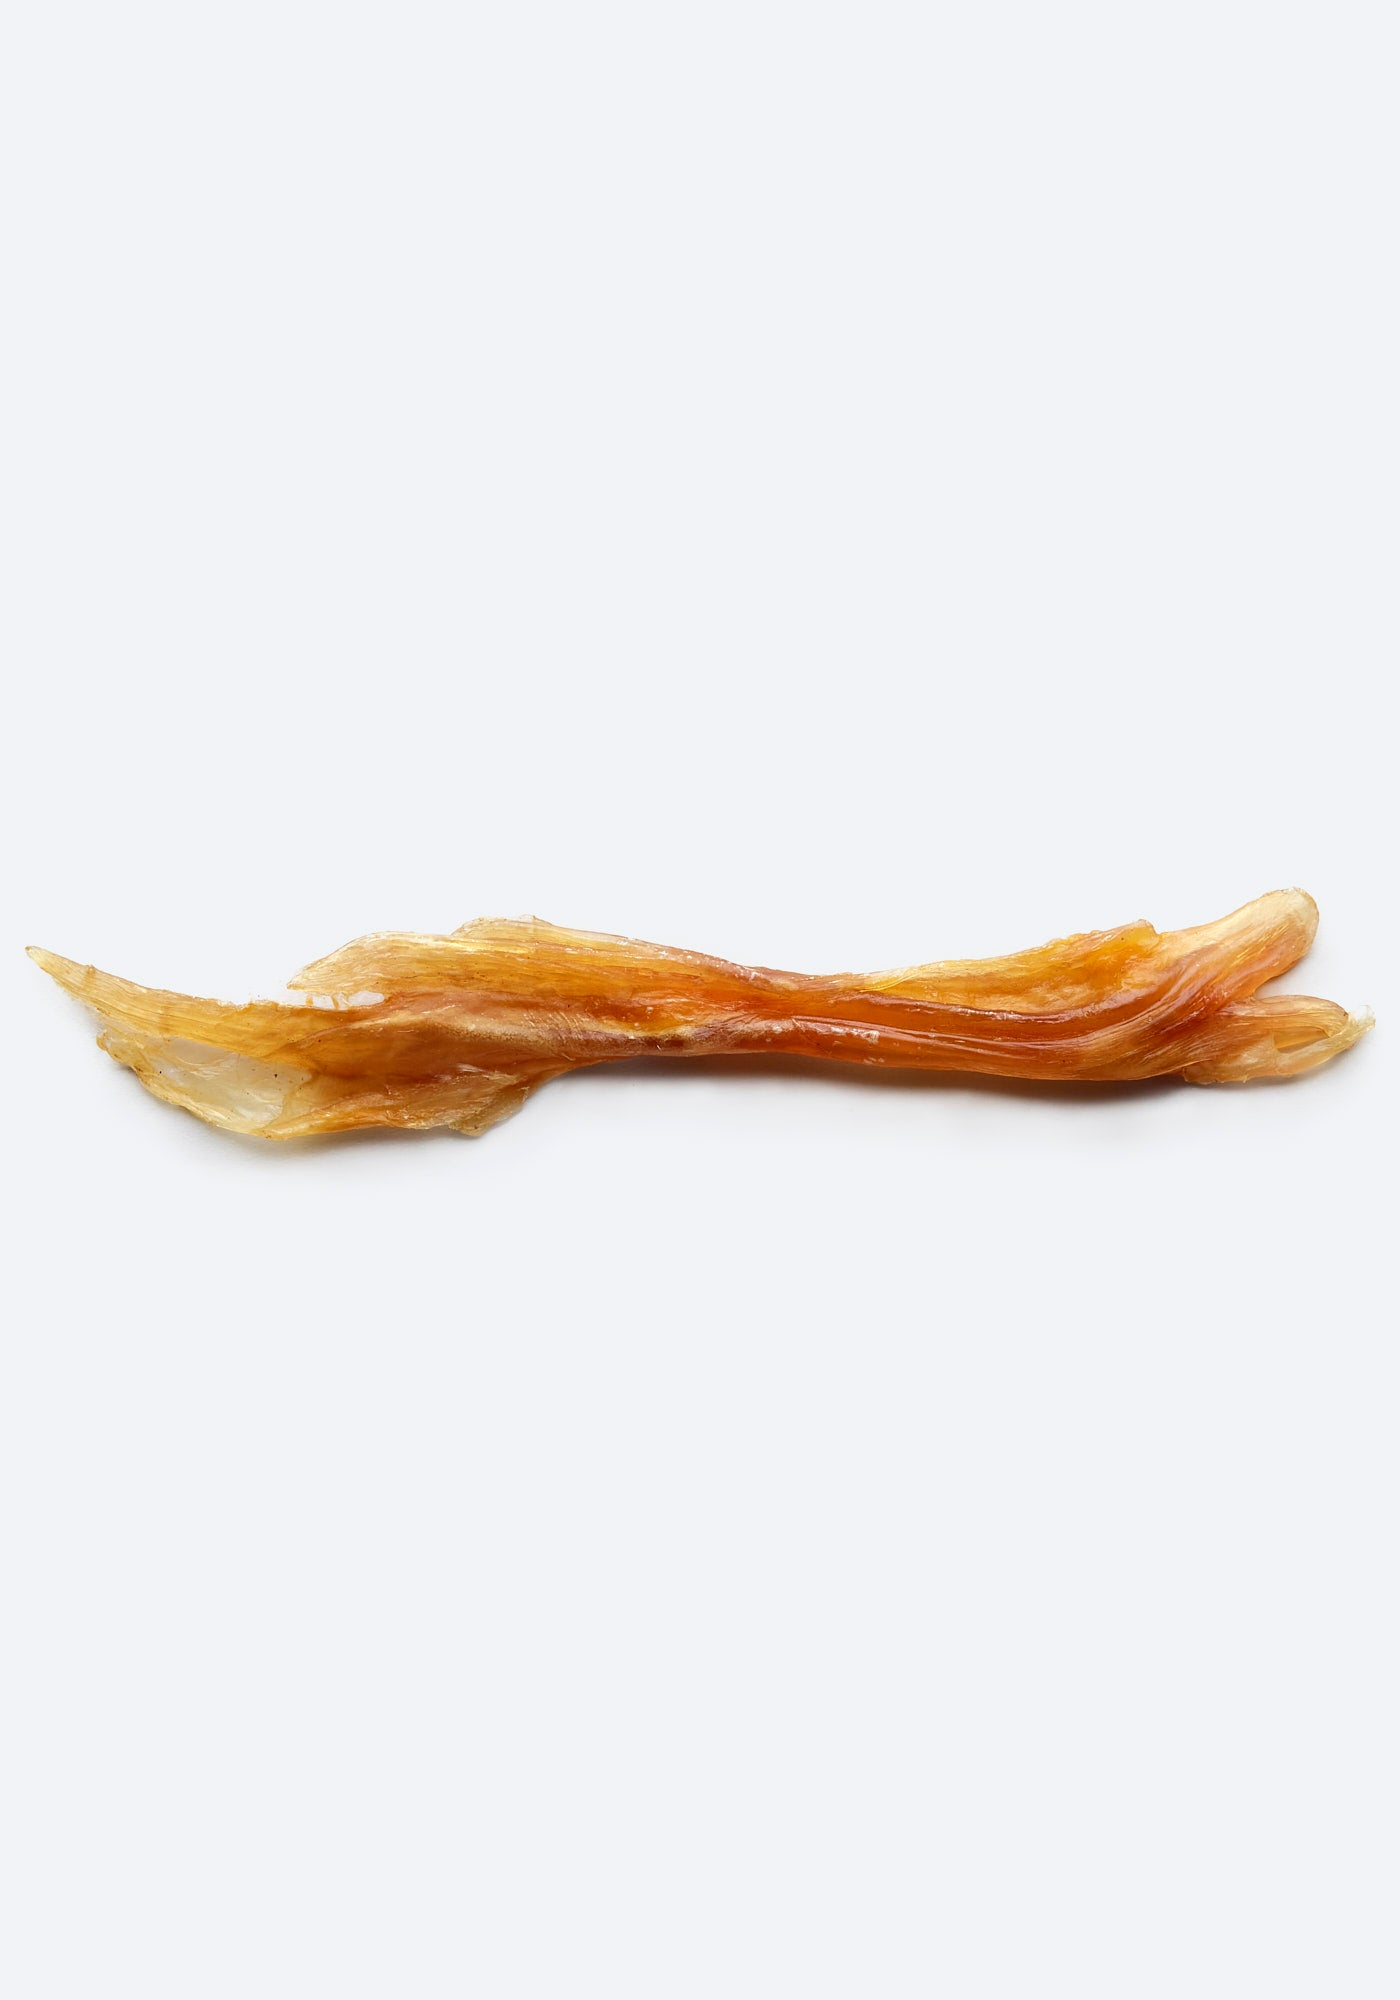 Veal tendon (single)